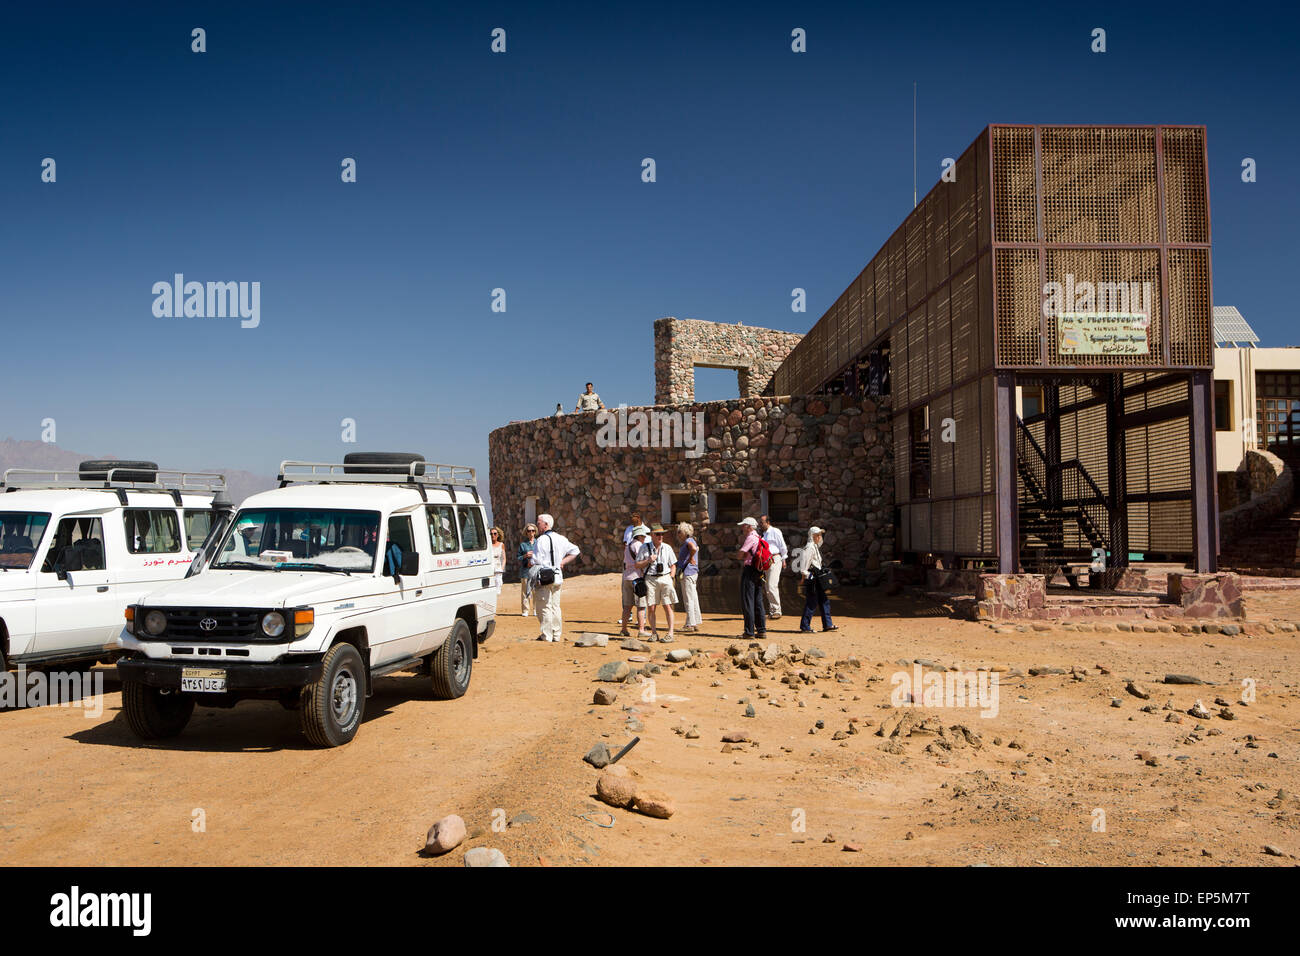 Egypt, Sinai, Sharm el Sheikh, Nabq National Park, tour group arriving at Visitor Centre - Stock Image